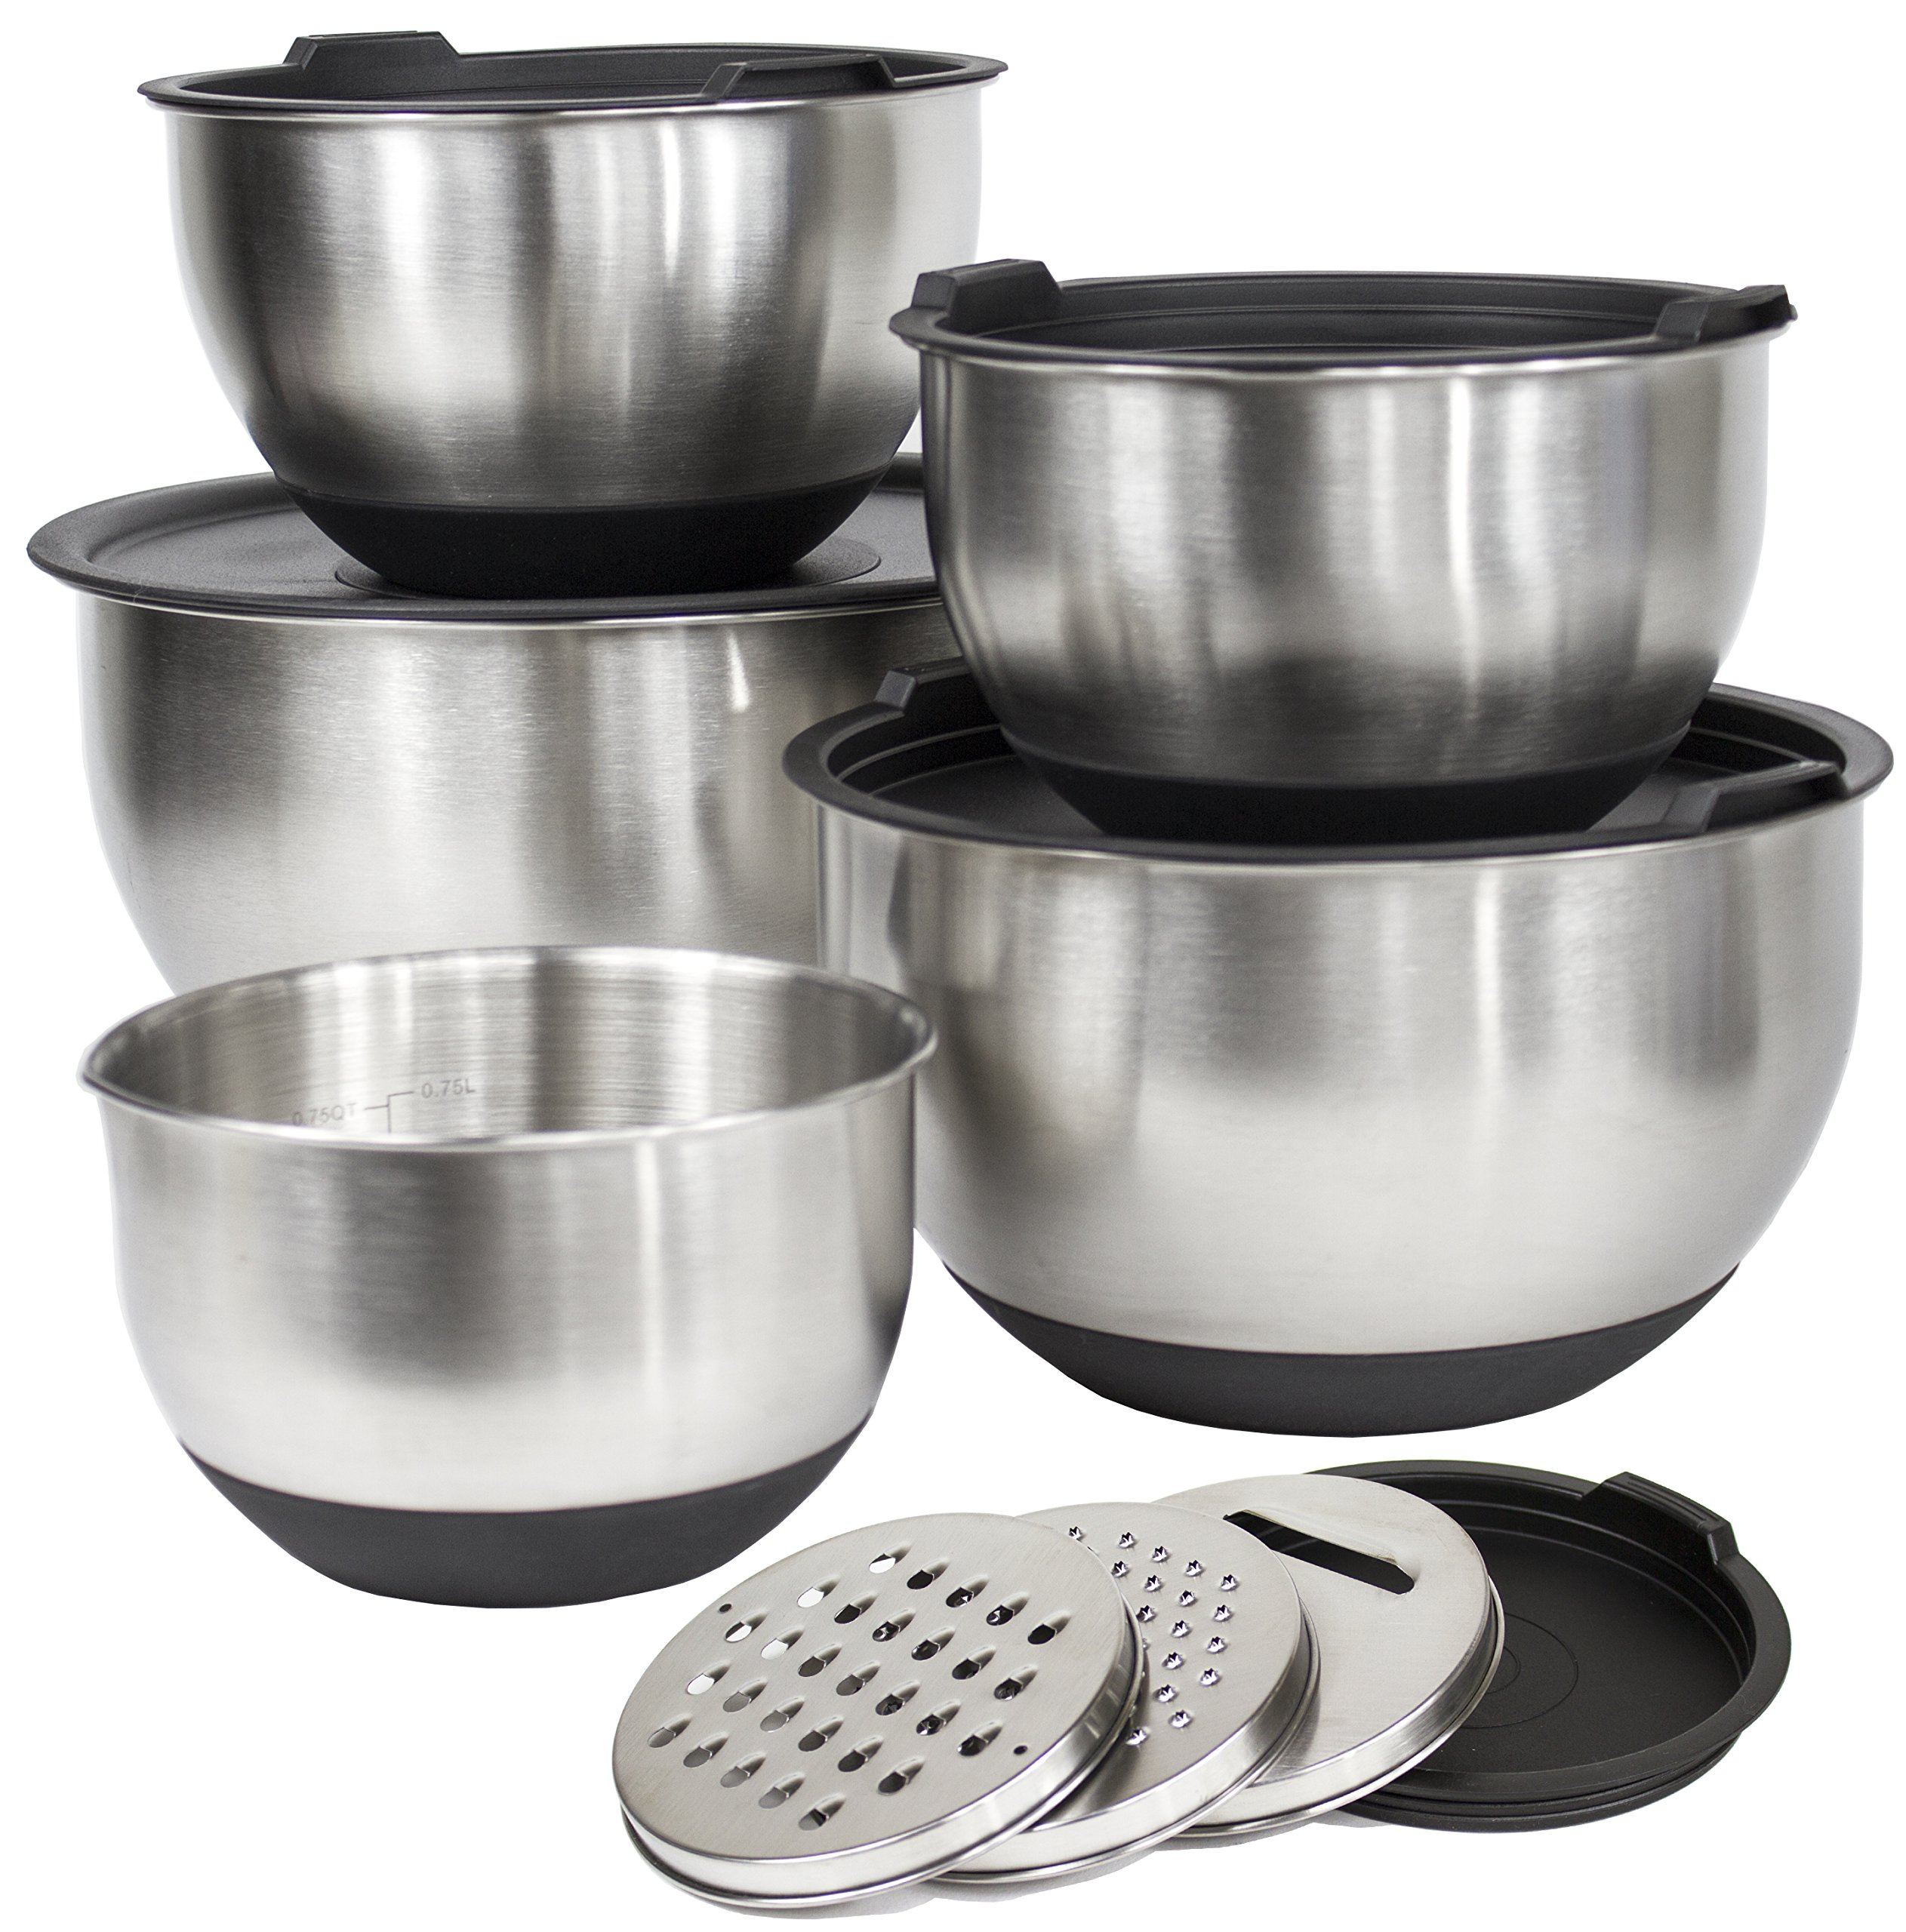 [Deluxe Set] 5 Premium Grade Stainless Steel Mixing Bowl Set with Lids and Non Skid Bottoms Stainless Steel Mixing Bowls with Pour Spout, Measurement Marks, and 3 Grater Attachments by Misc Home